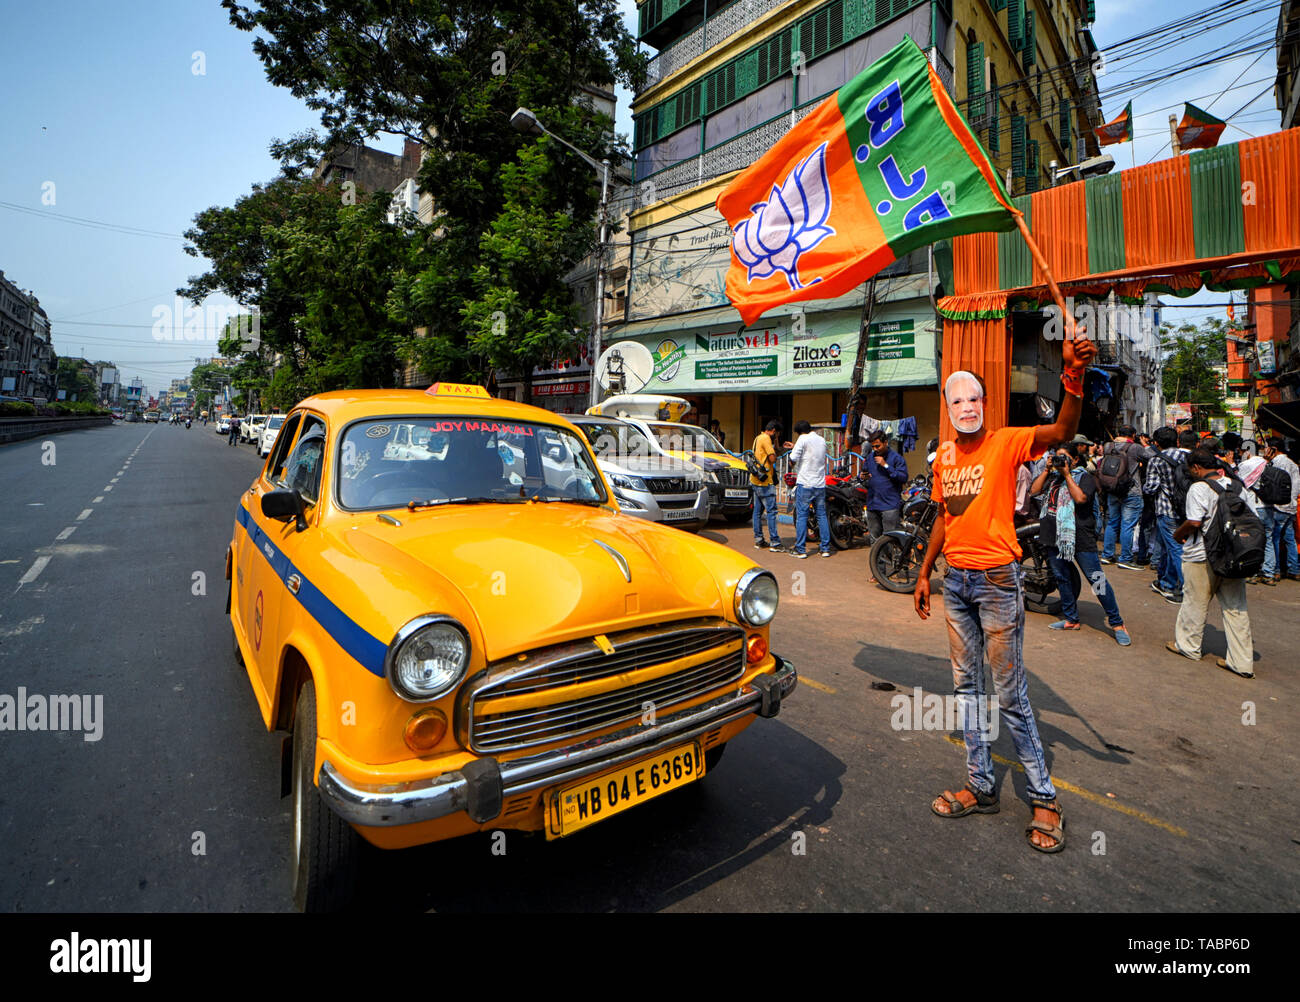 A supporter of Bharatiya Janata Party (BJP) seen wearing a Mask of Narendra Modi while weaving BJP Flags in front of the Party Head quarter in Kolkata after making massive Win in West Bengal & India election. Bharatiya Janata Party (BJP) wins election in Kolkata, India. - Stock Image